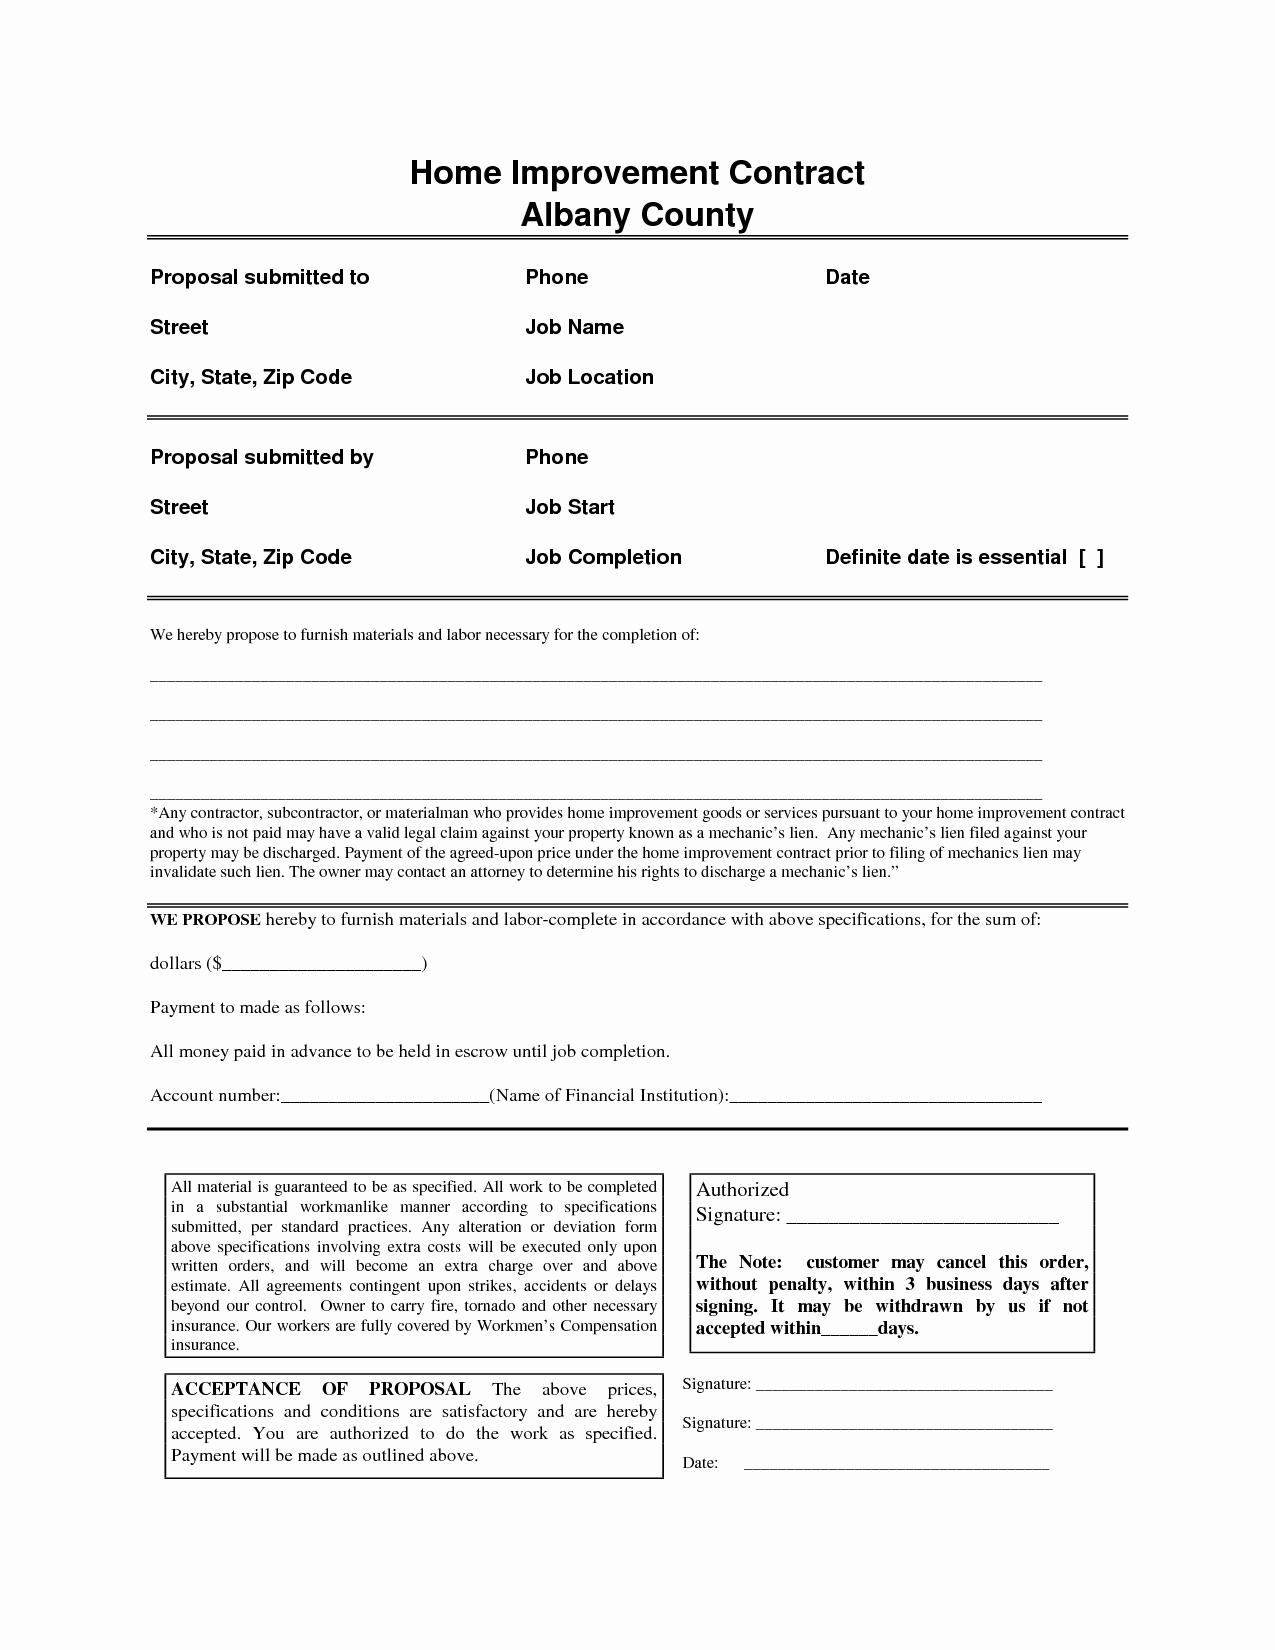 Home Remodeling Contract Template Awesome Home Improvement Contract Free Printable Documents